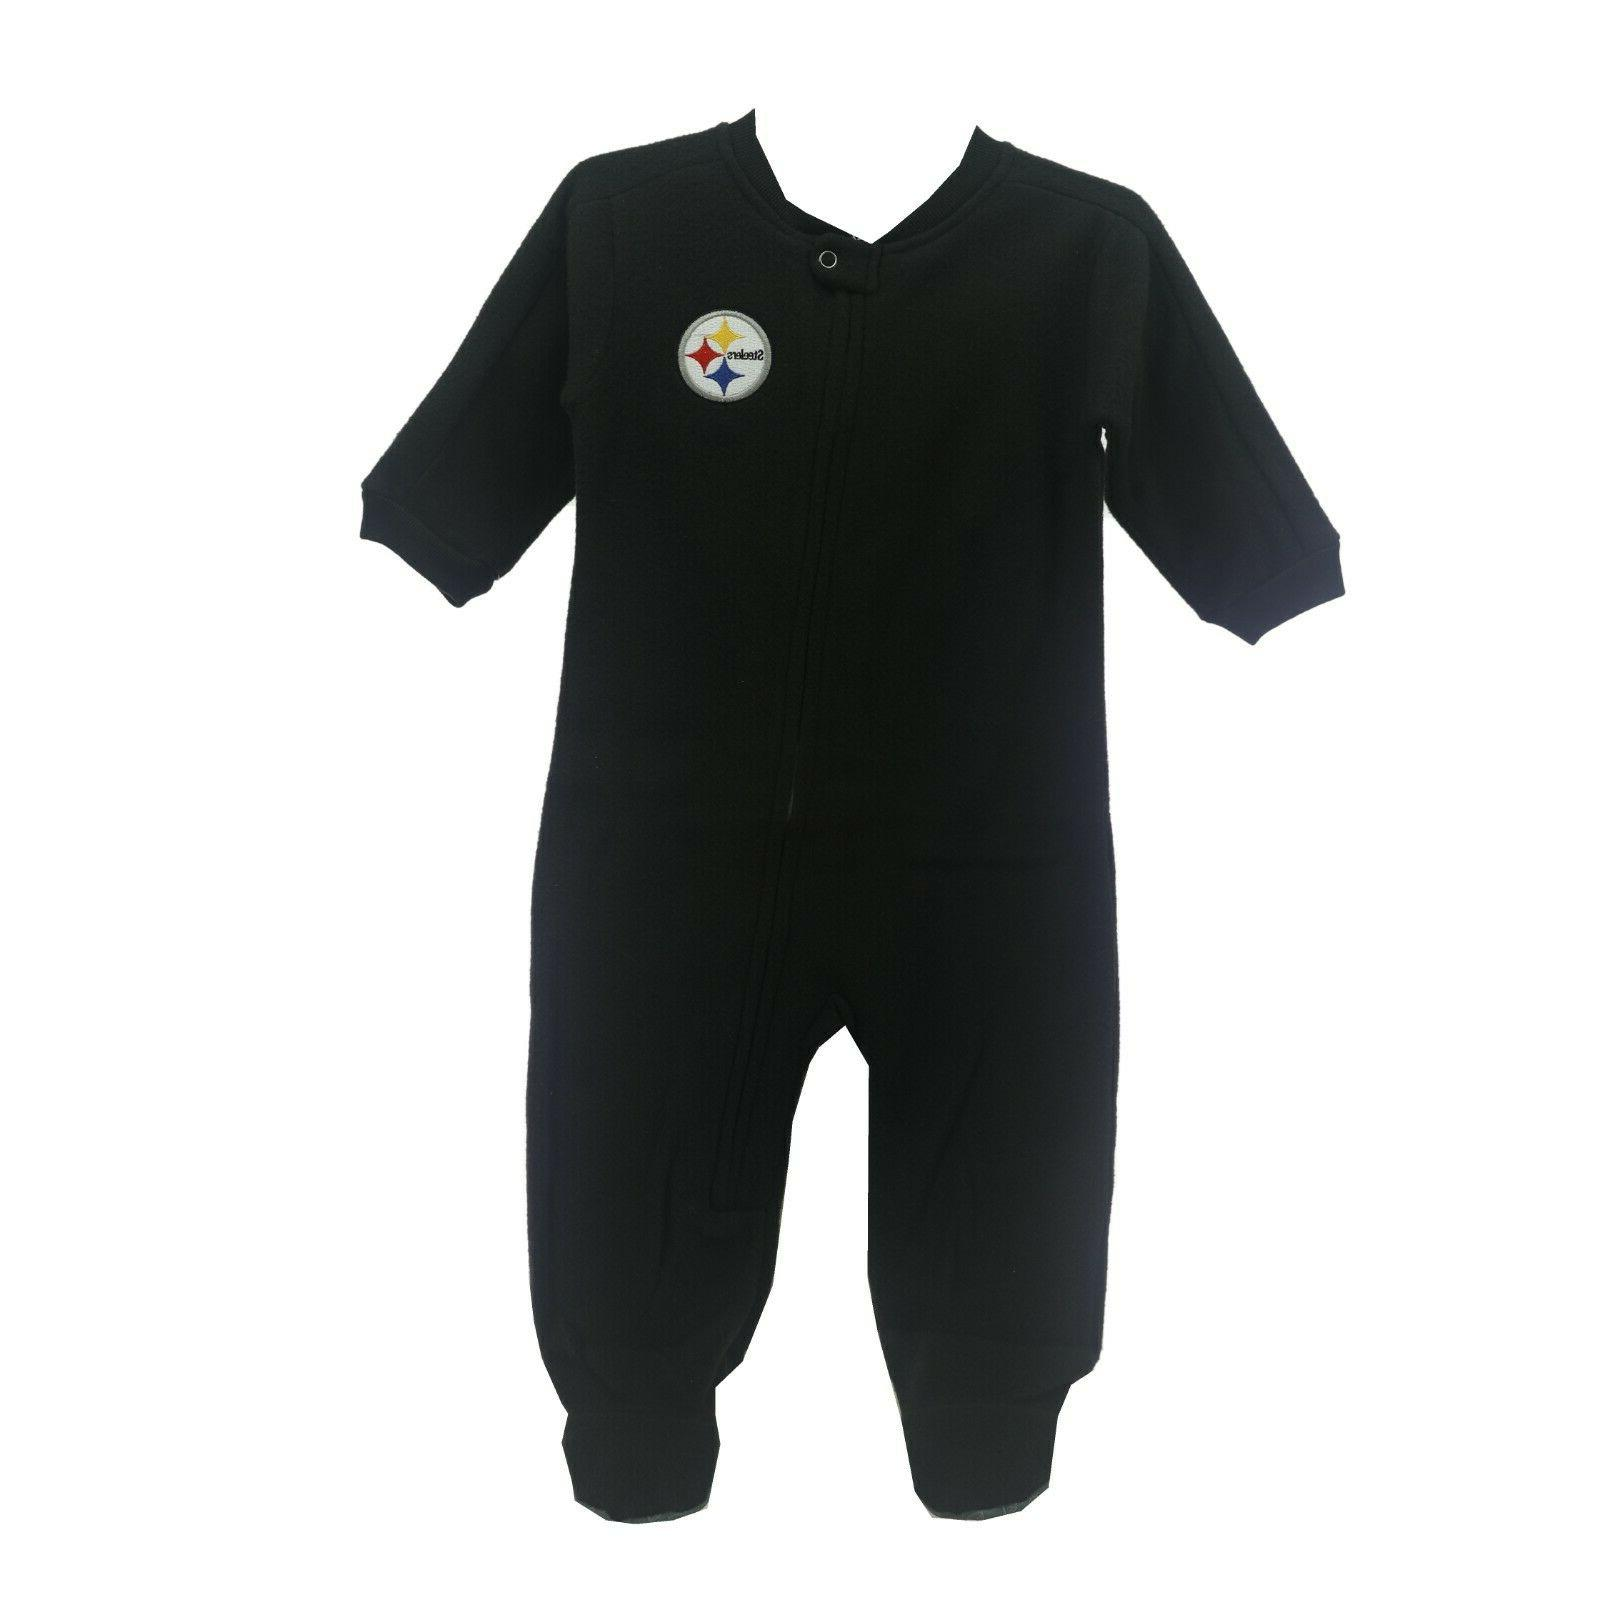 pittsburgh steelers nfl apparel infant baby size